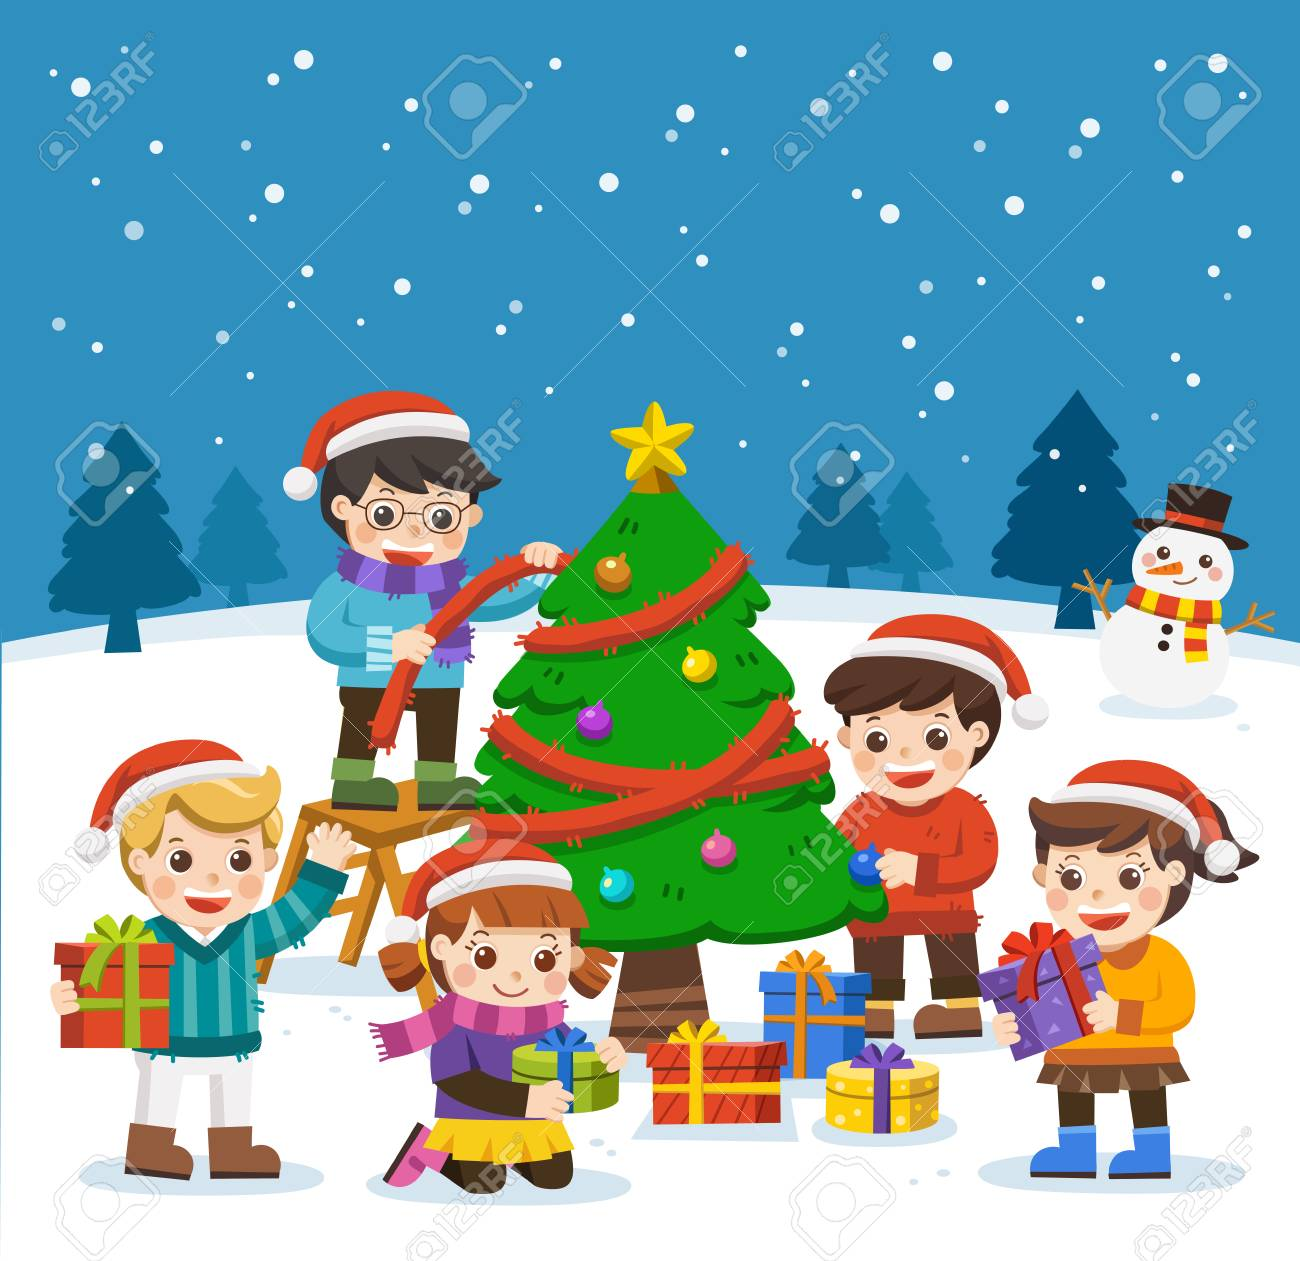 happy new year and merry christmas with adorable kids snowman and christmas tree kids